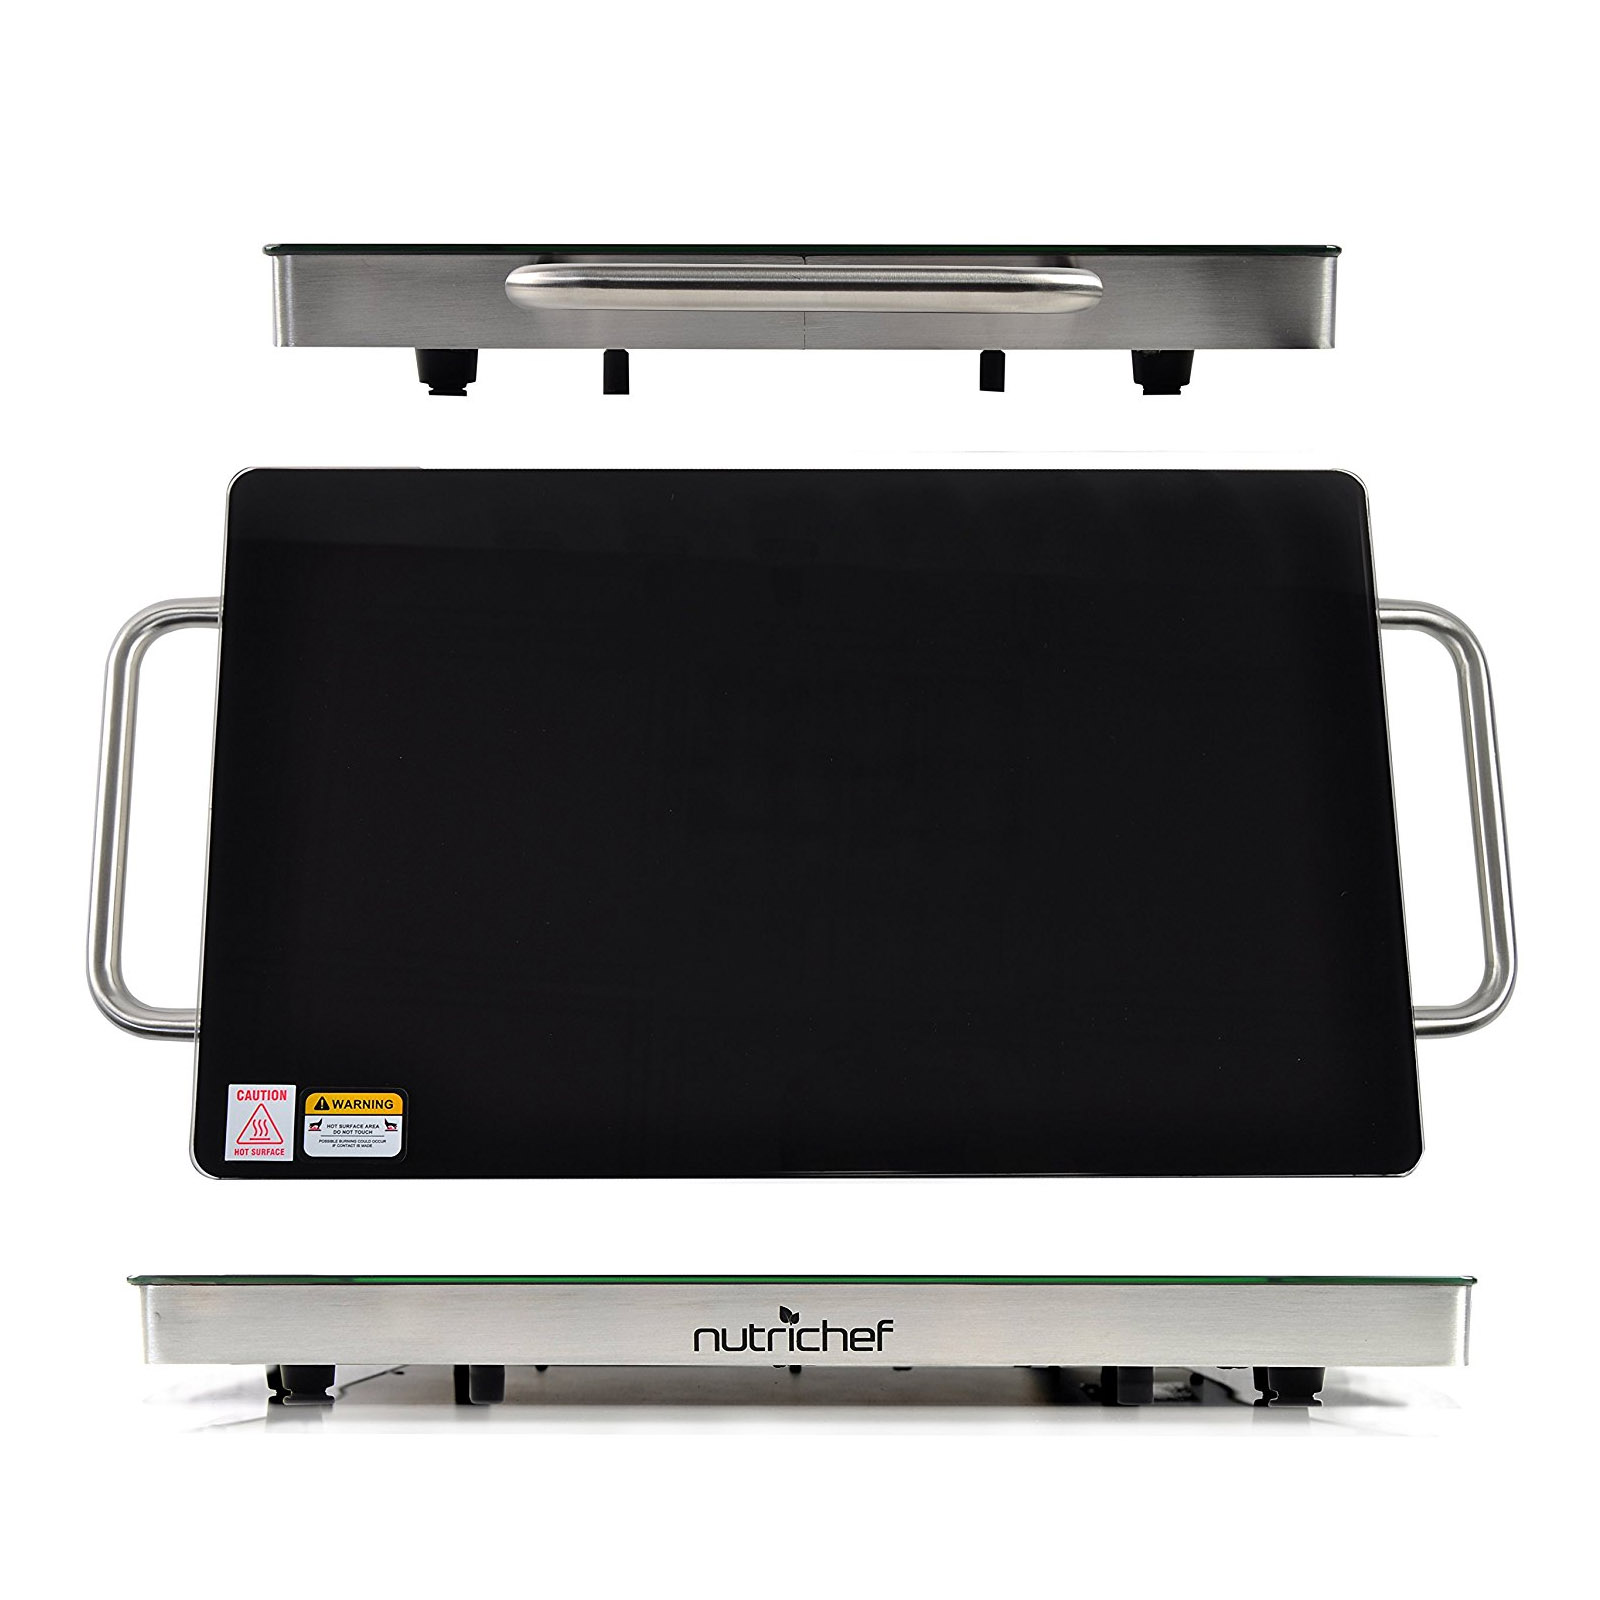 "NutriChef Electric Warming Tray / Food Warmer with Non-Stick Heat-Resistant Glass Plate - 19.8"" x 11.9"" Heating Surface"